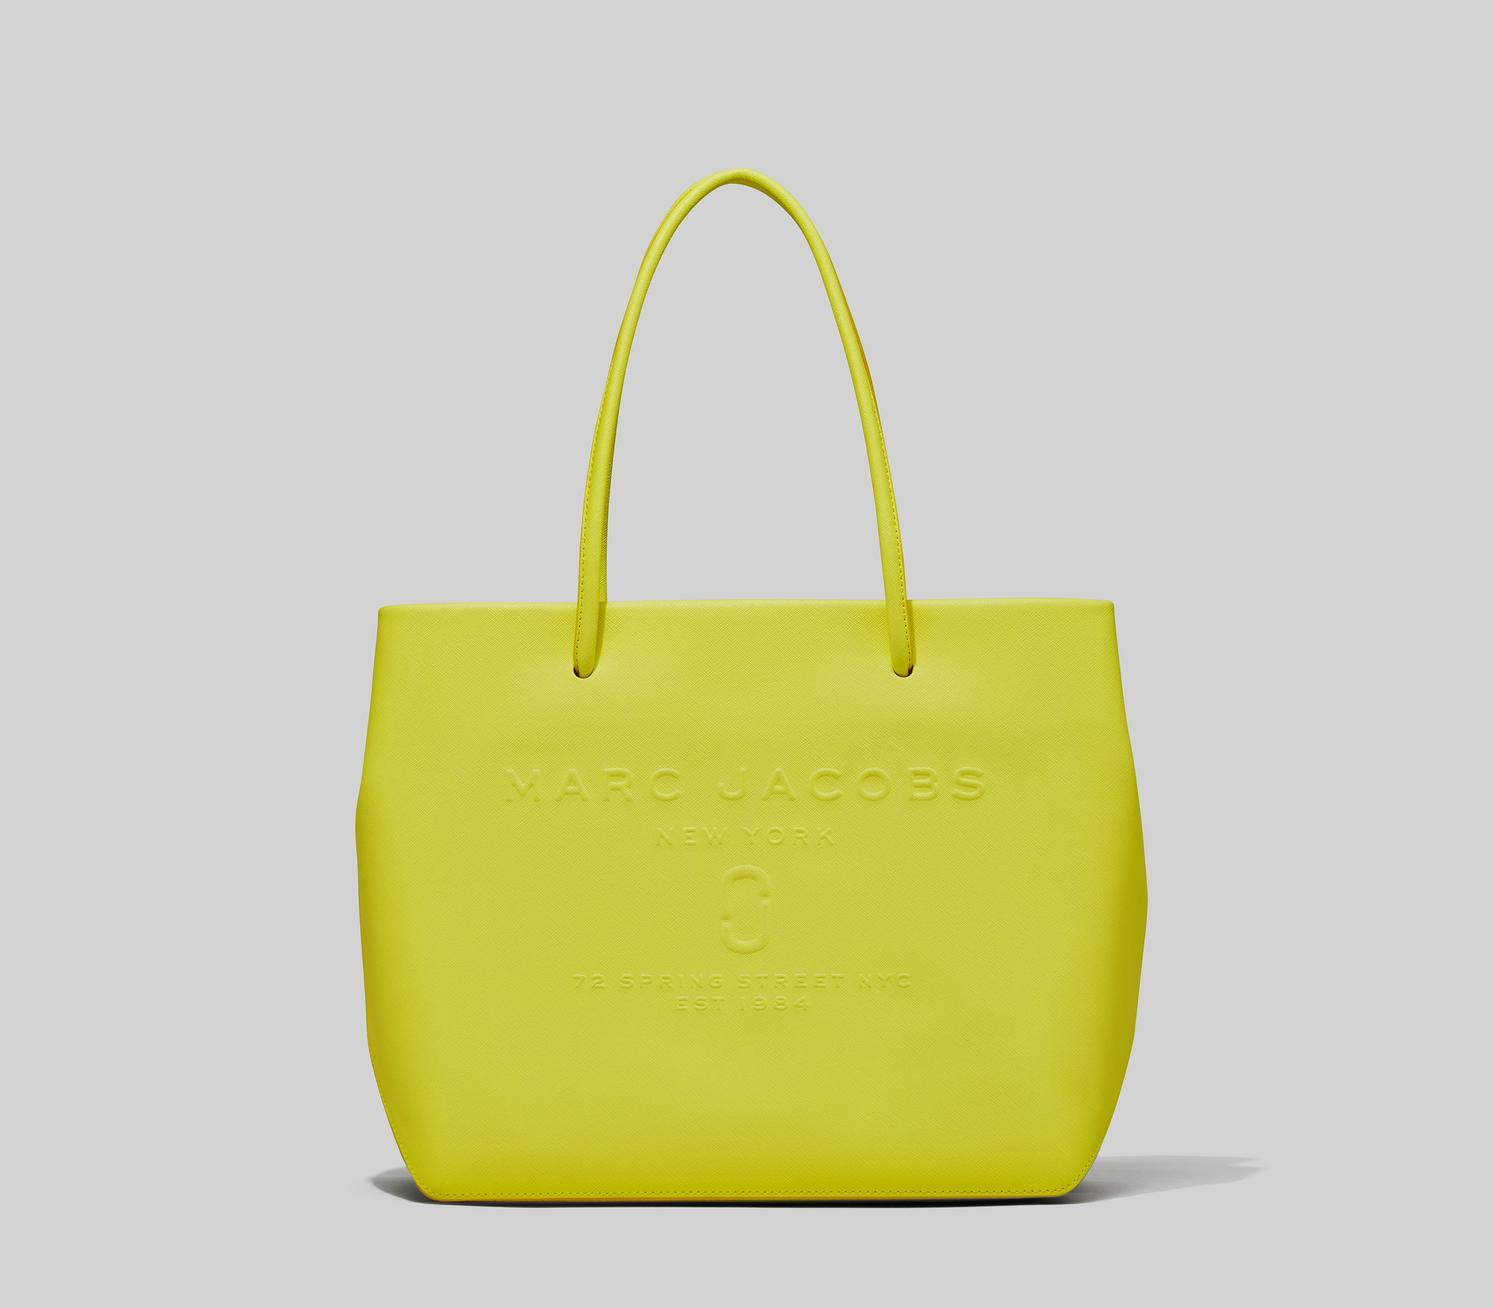 neon bag from Marc Jacobs